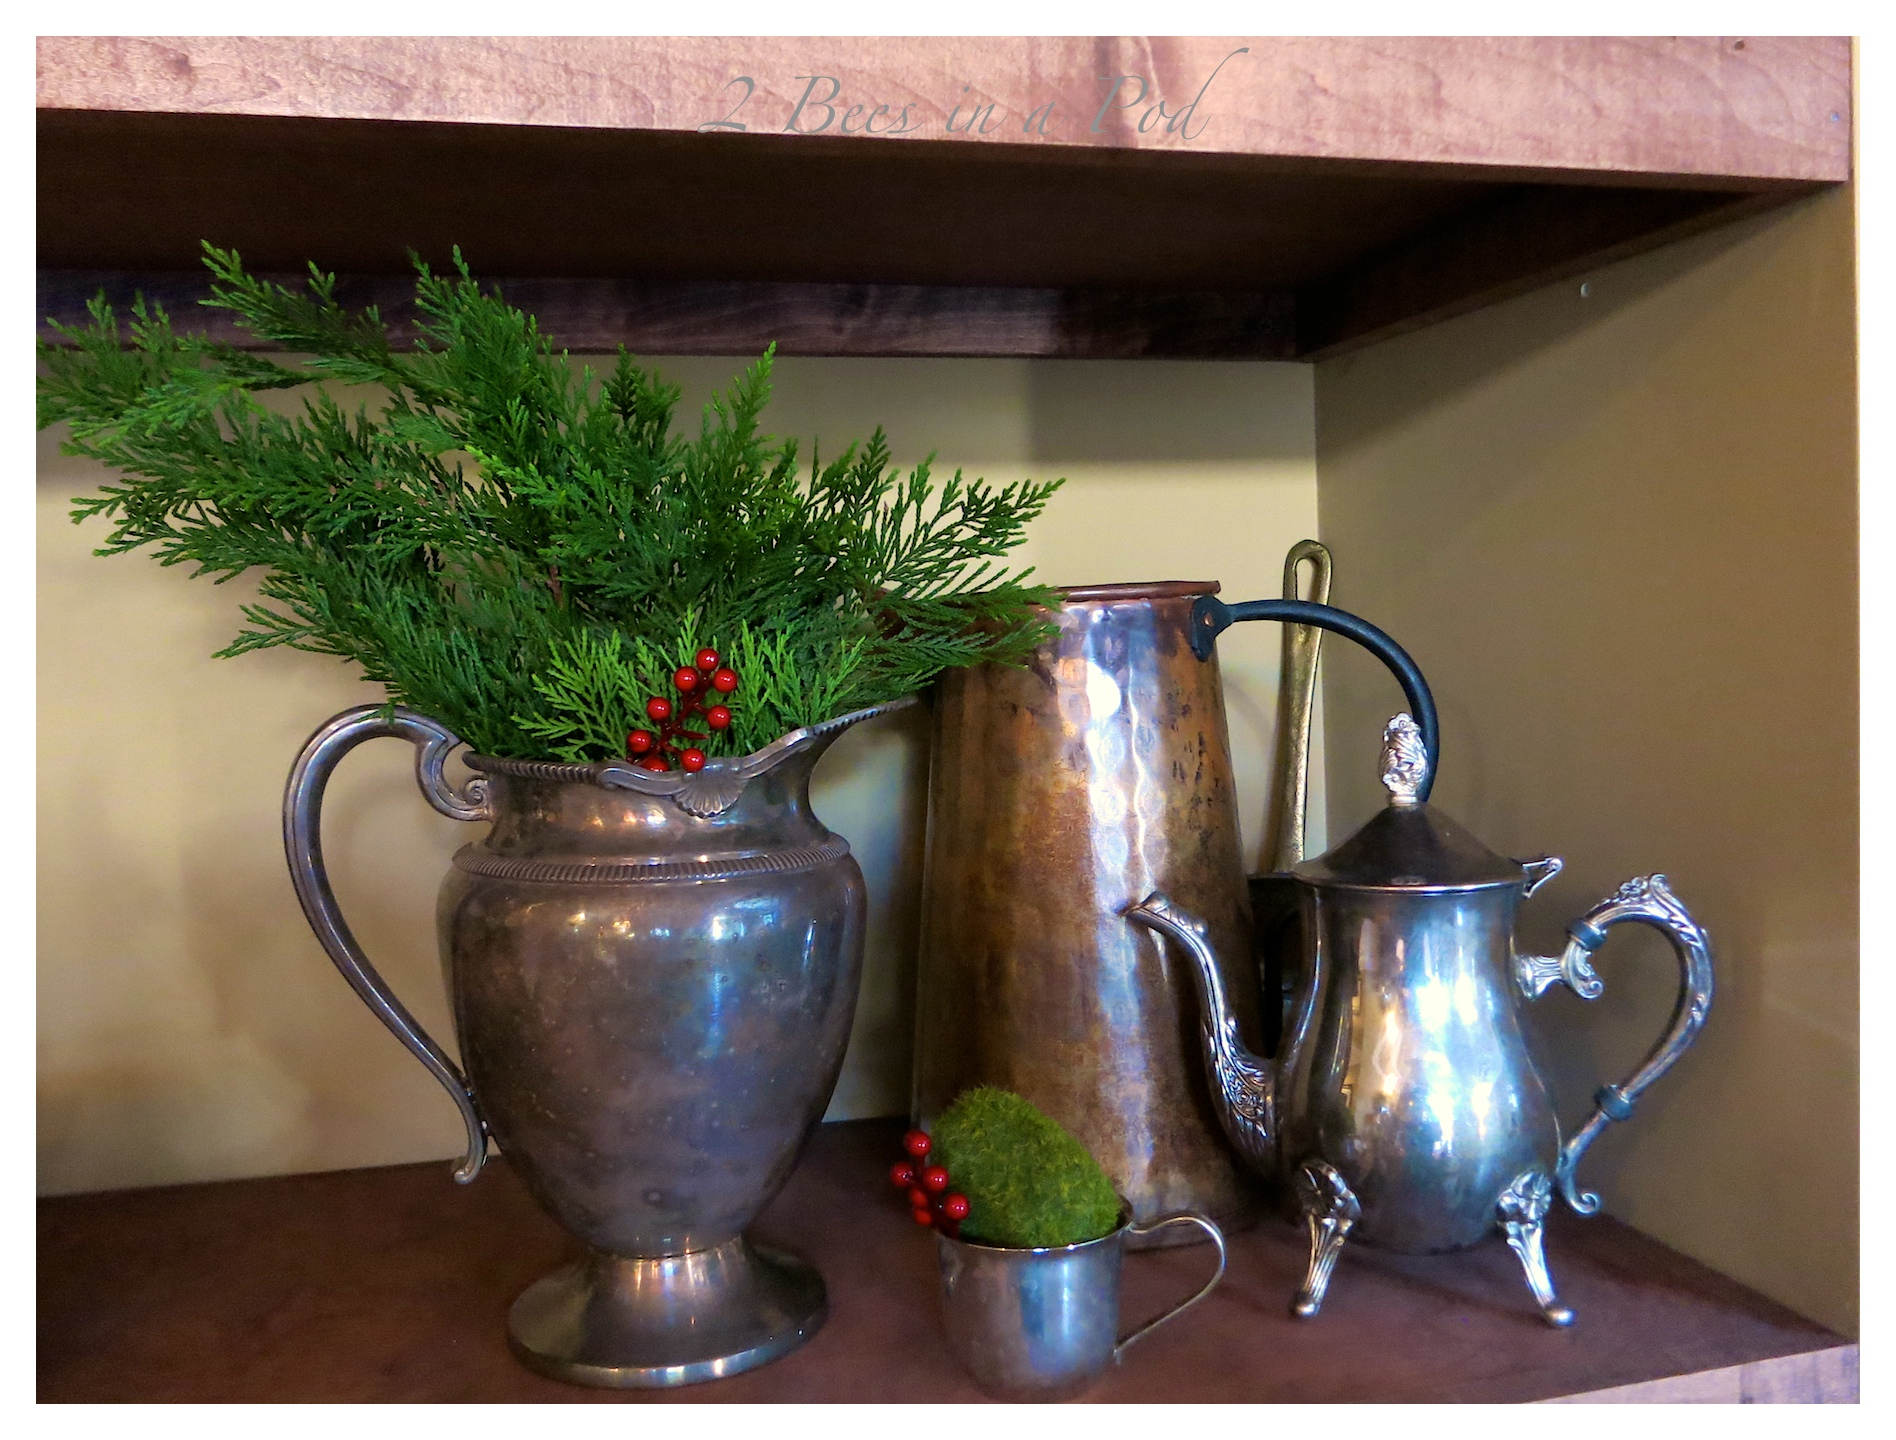 IRustic Christmas - I love the crusty, rusty, chippy and warmth that rustic elements bring to my home for Christmas! I have a collection of old metal pitchers.